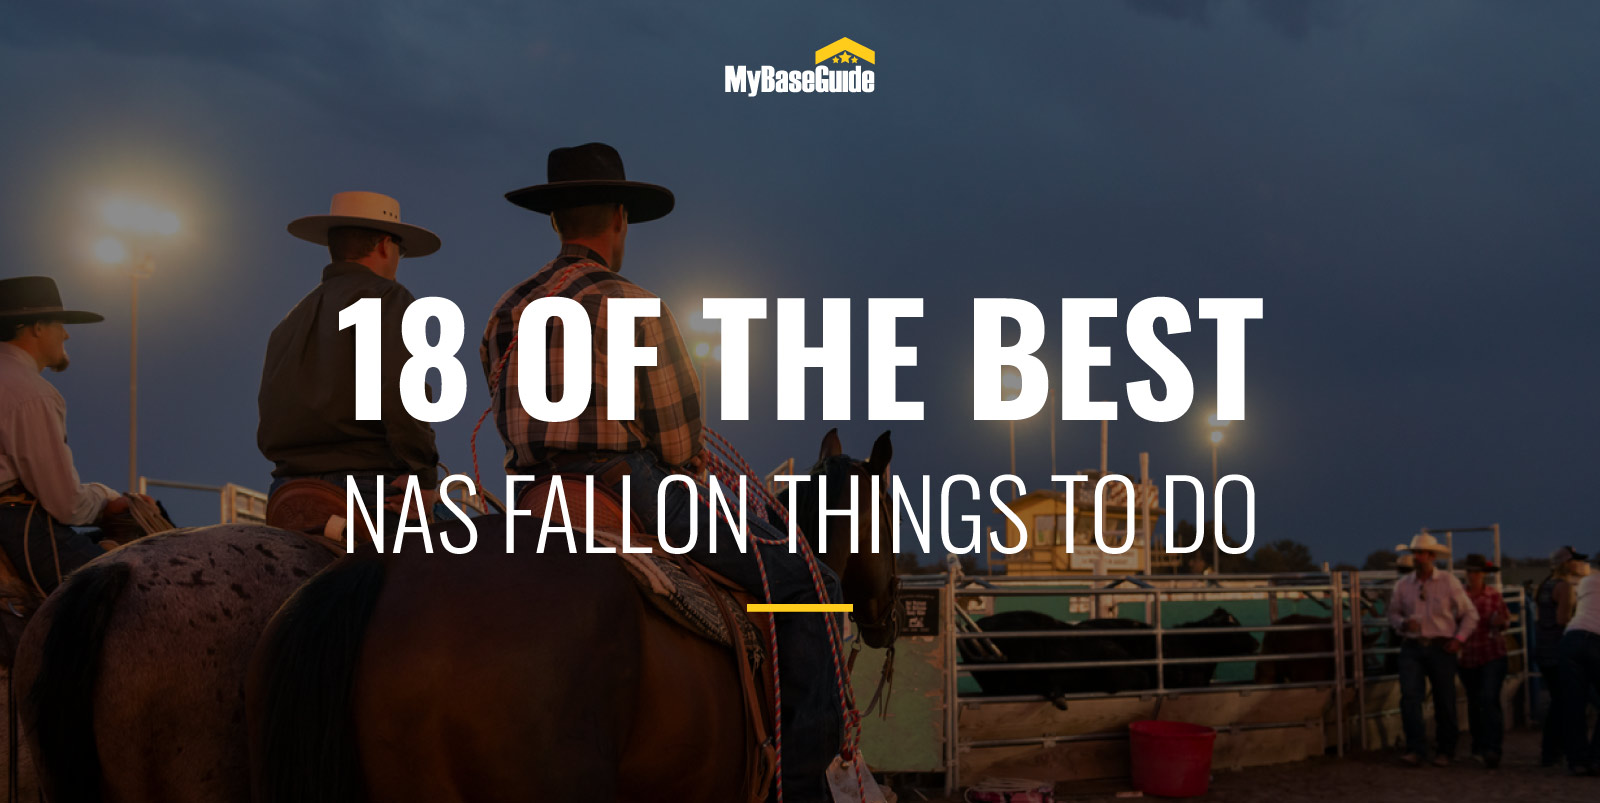 18 of the Best NAS Fallon Things To Do